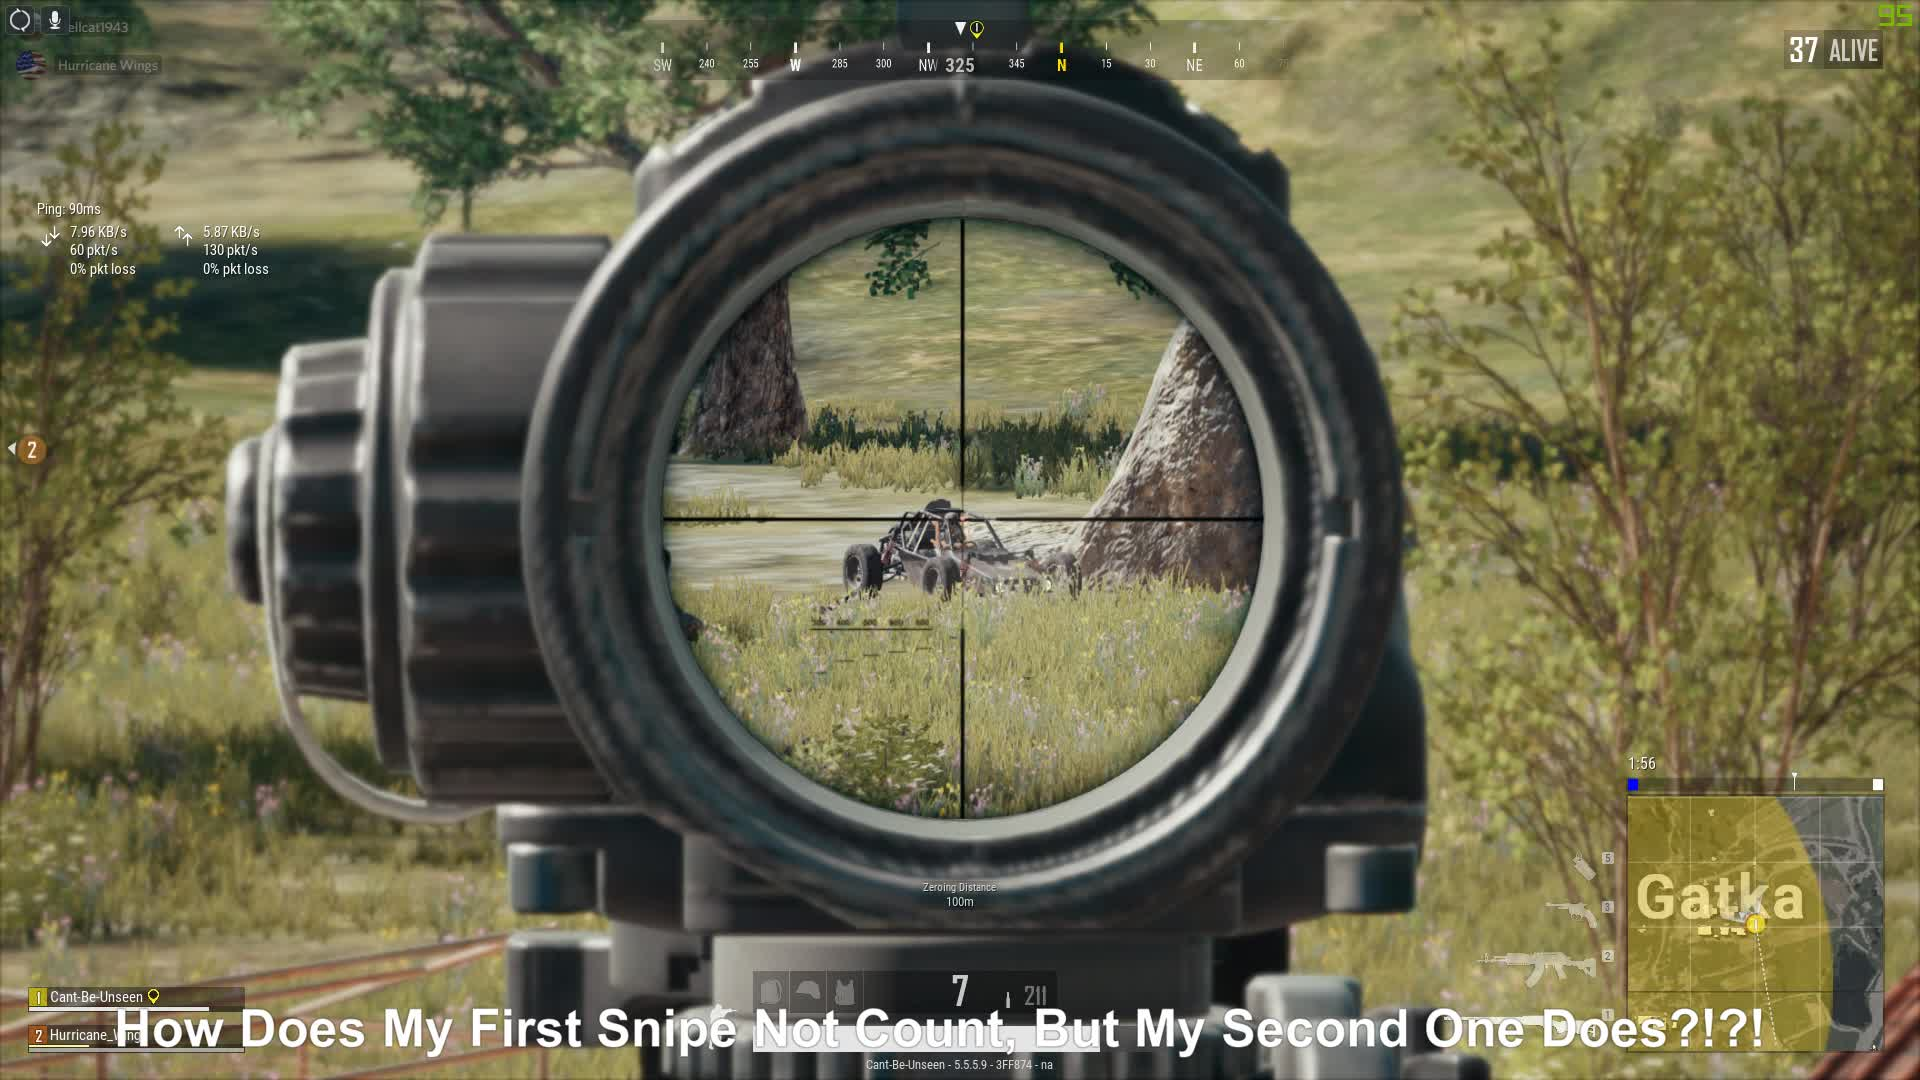 pubattlegrounds, pubg, How Does My First Snipe Not Count, But The Second One Does PUBG?!?!? GIFs